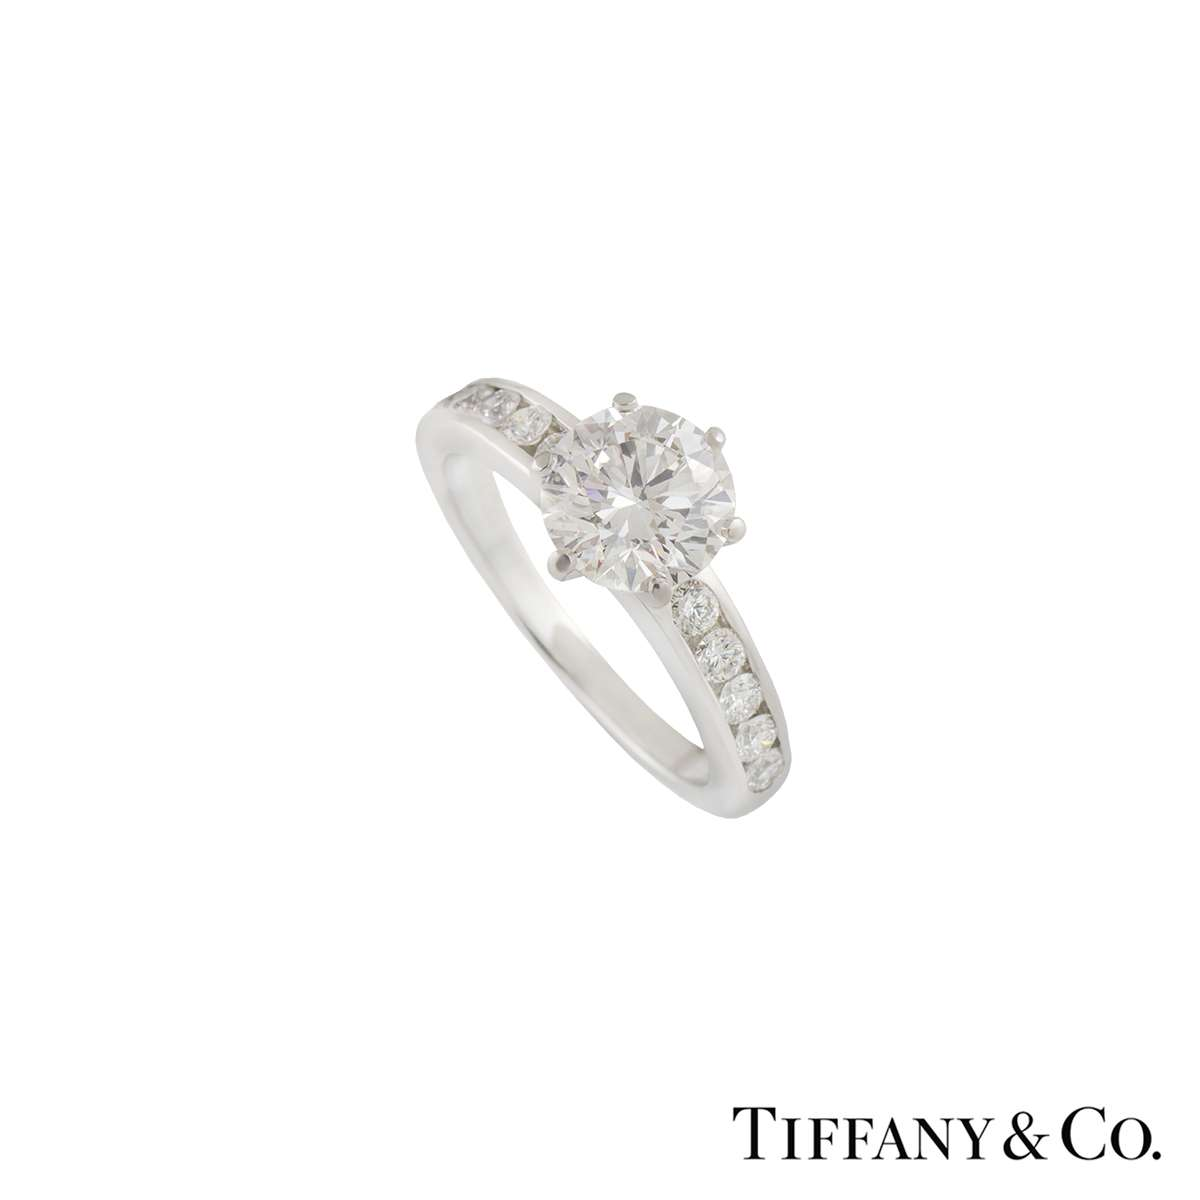 Tiffany & Co. The Tiffany Setting with Diamond Band Ring 1.45ct G/VS1